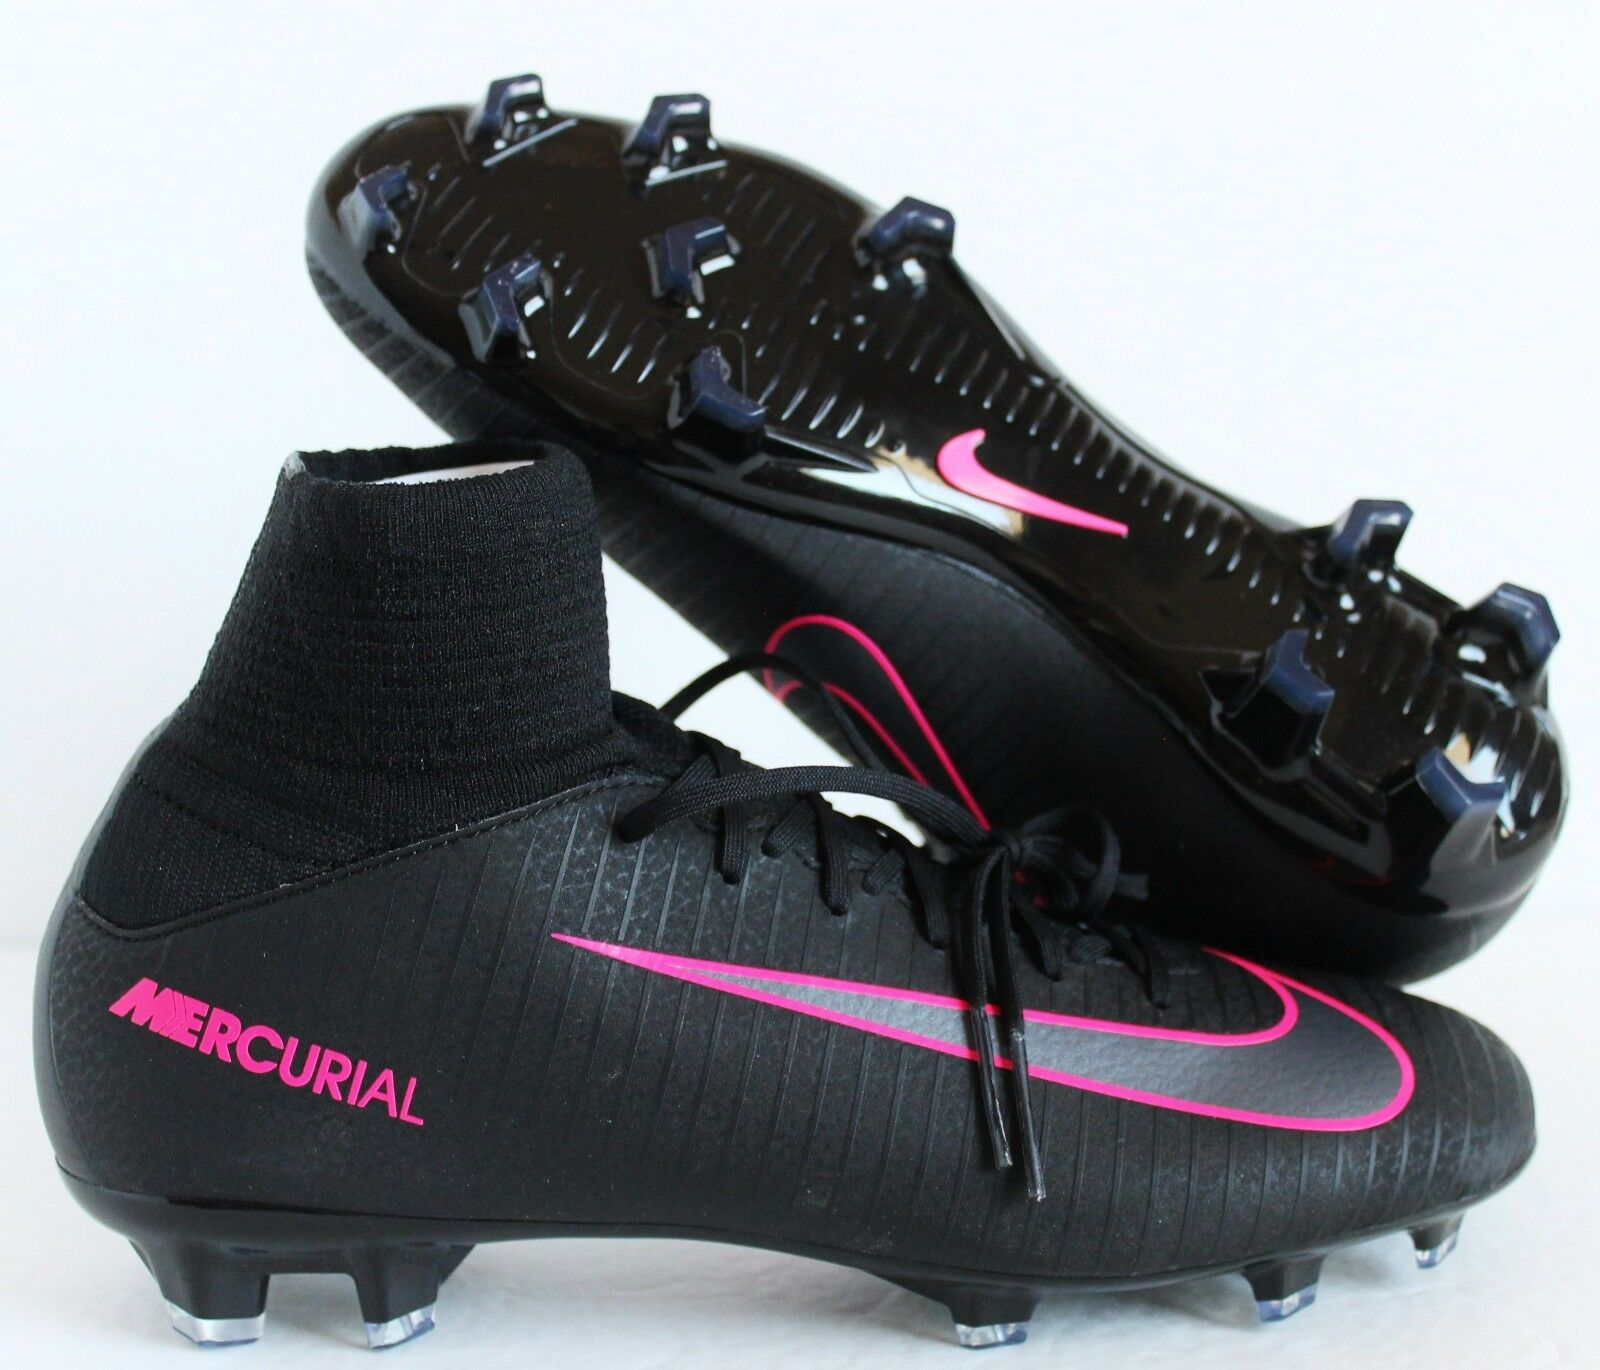 Nike JR Mercurial Superfly V 5 FG Firm Ground Cleat Shoe 831943-006 Size 5Y Team Sports